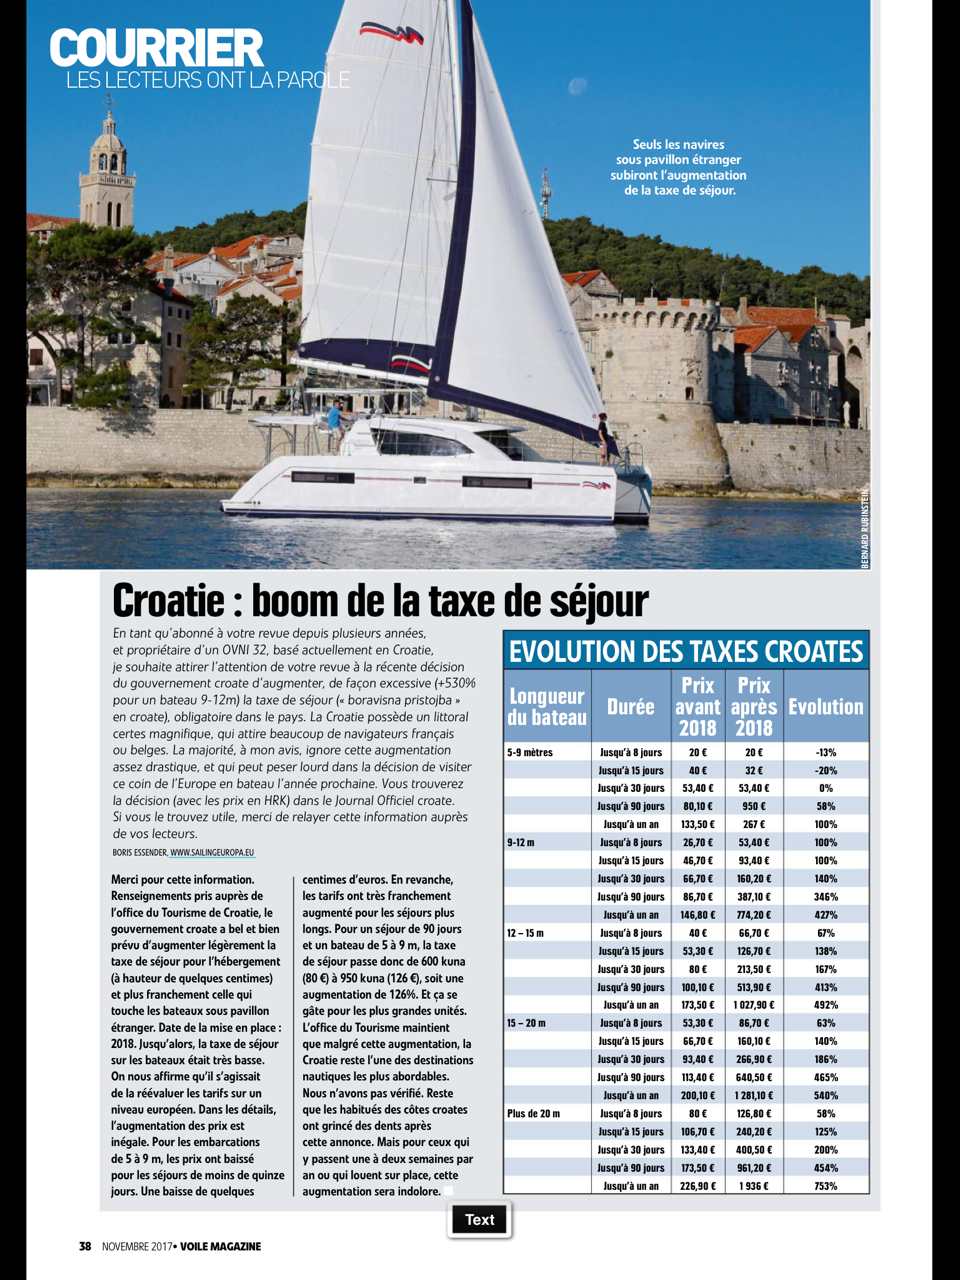 Drastic augmentation of the sojourn tax for boats in Croatia as of 2018.